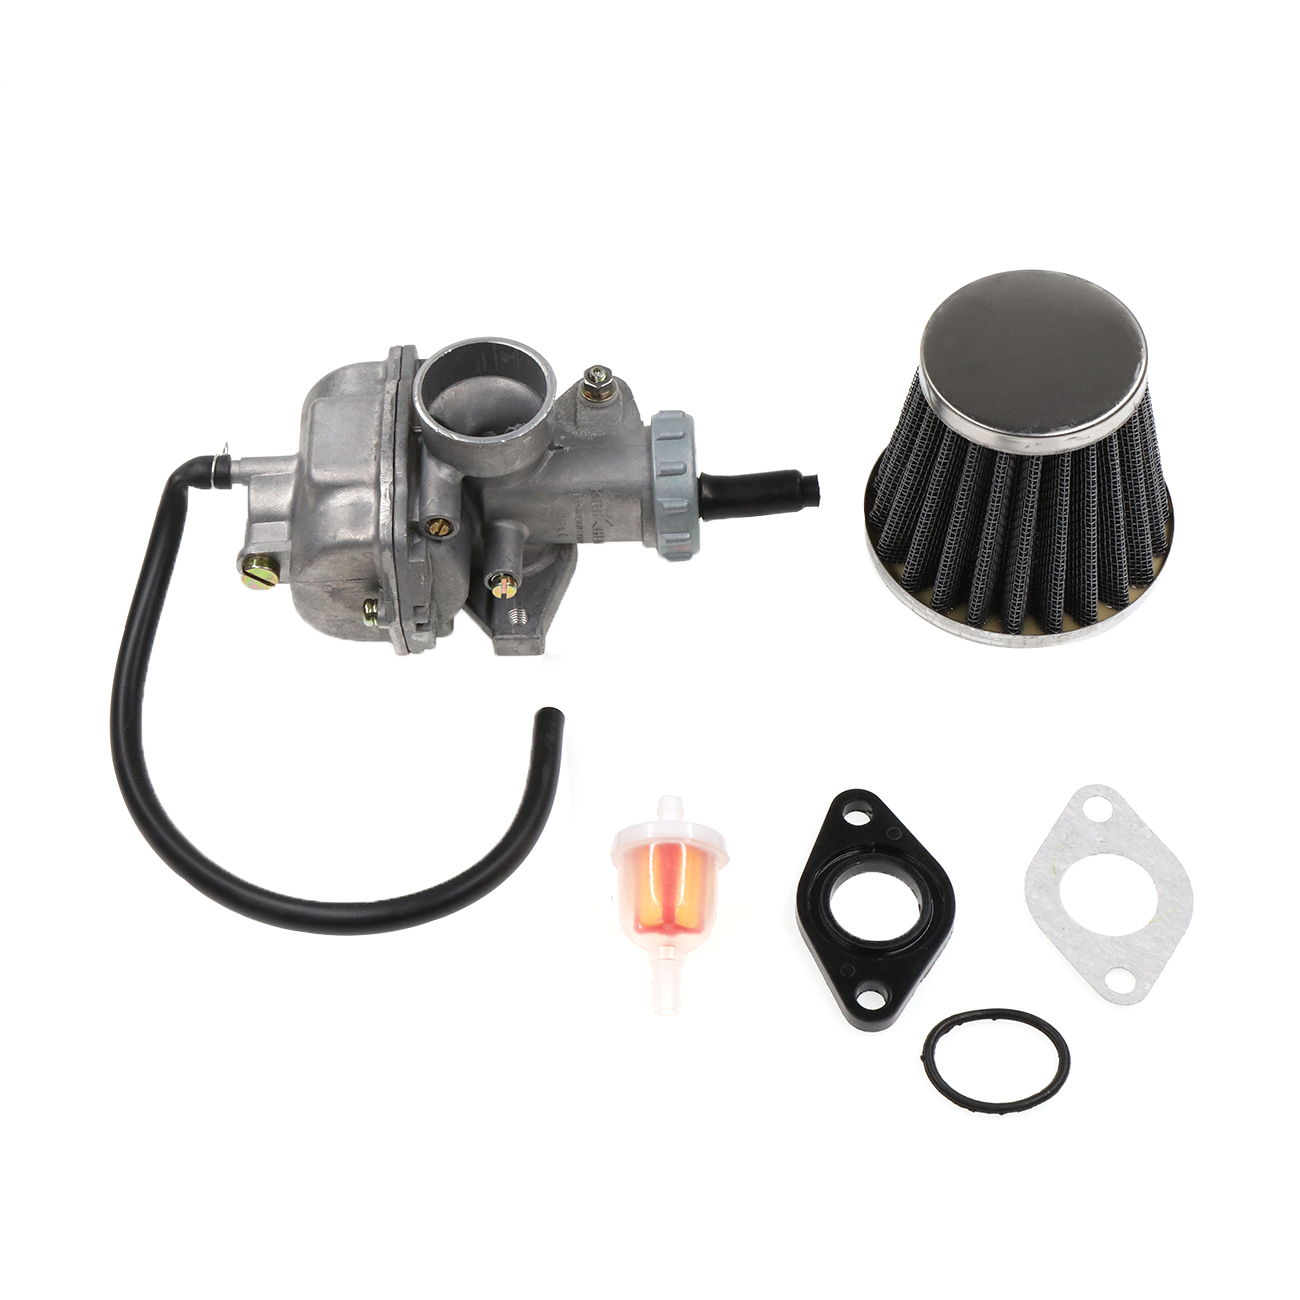 US $19 99  High Quality PZ20 Carburetor Carb 50 70 90 110 125 135cc ATV  Quad Go kart-in Chainsaws from Tools on Aliexpress com   Alibaba Group